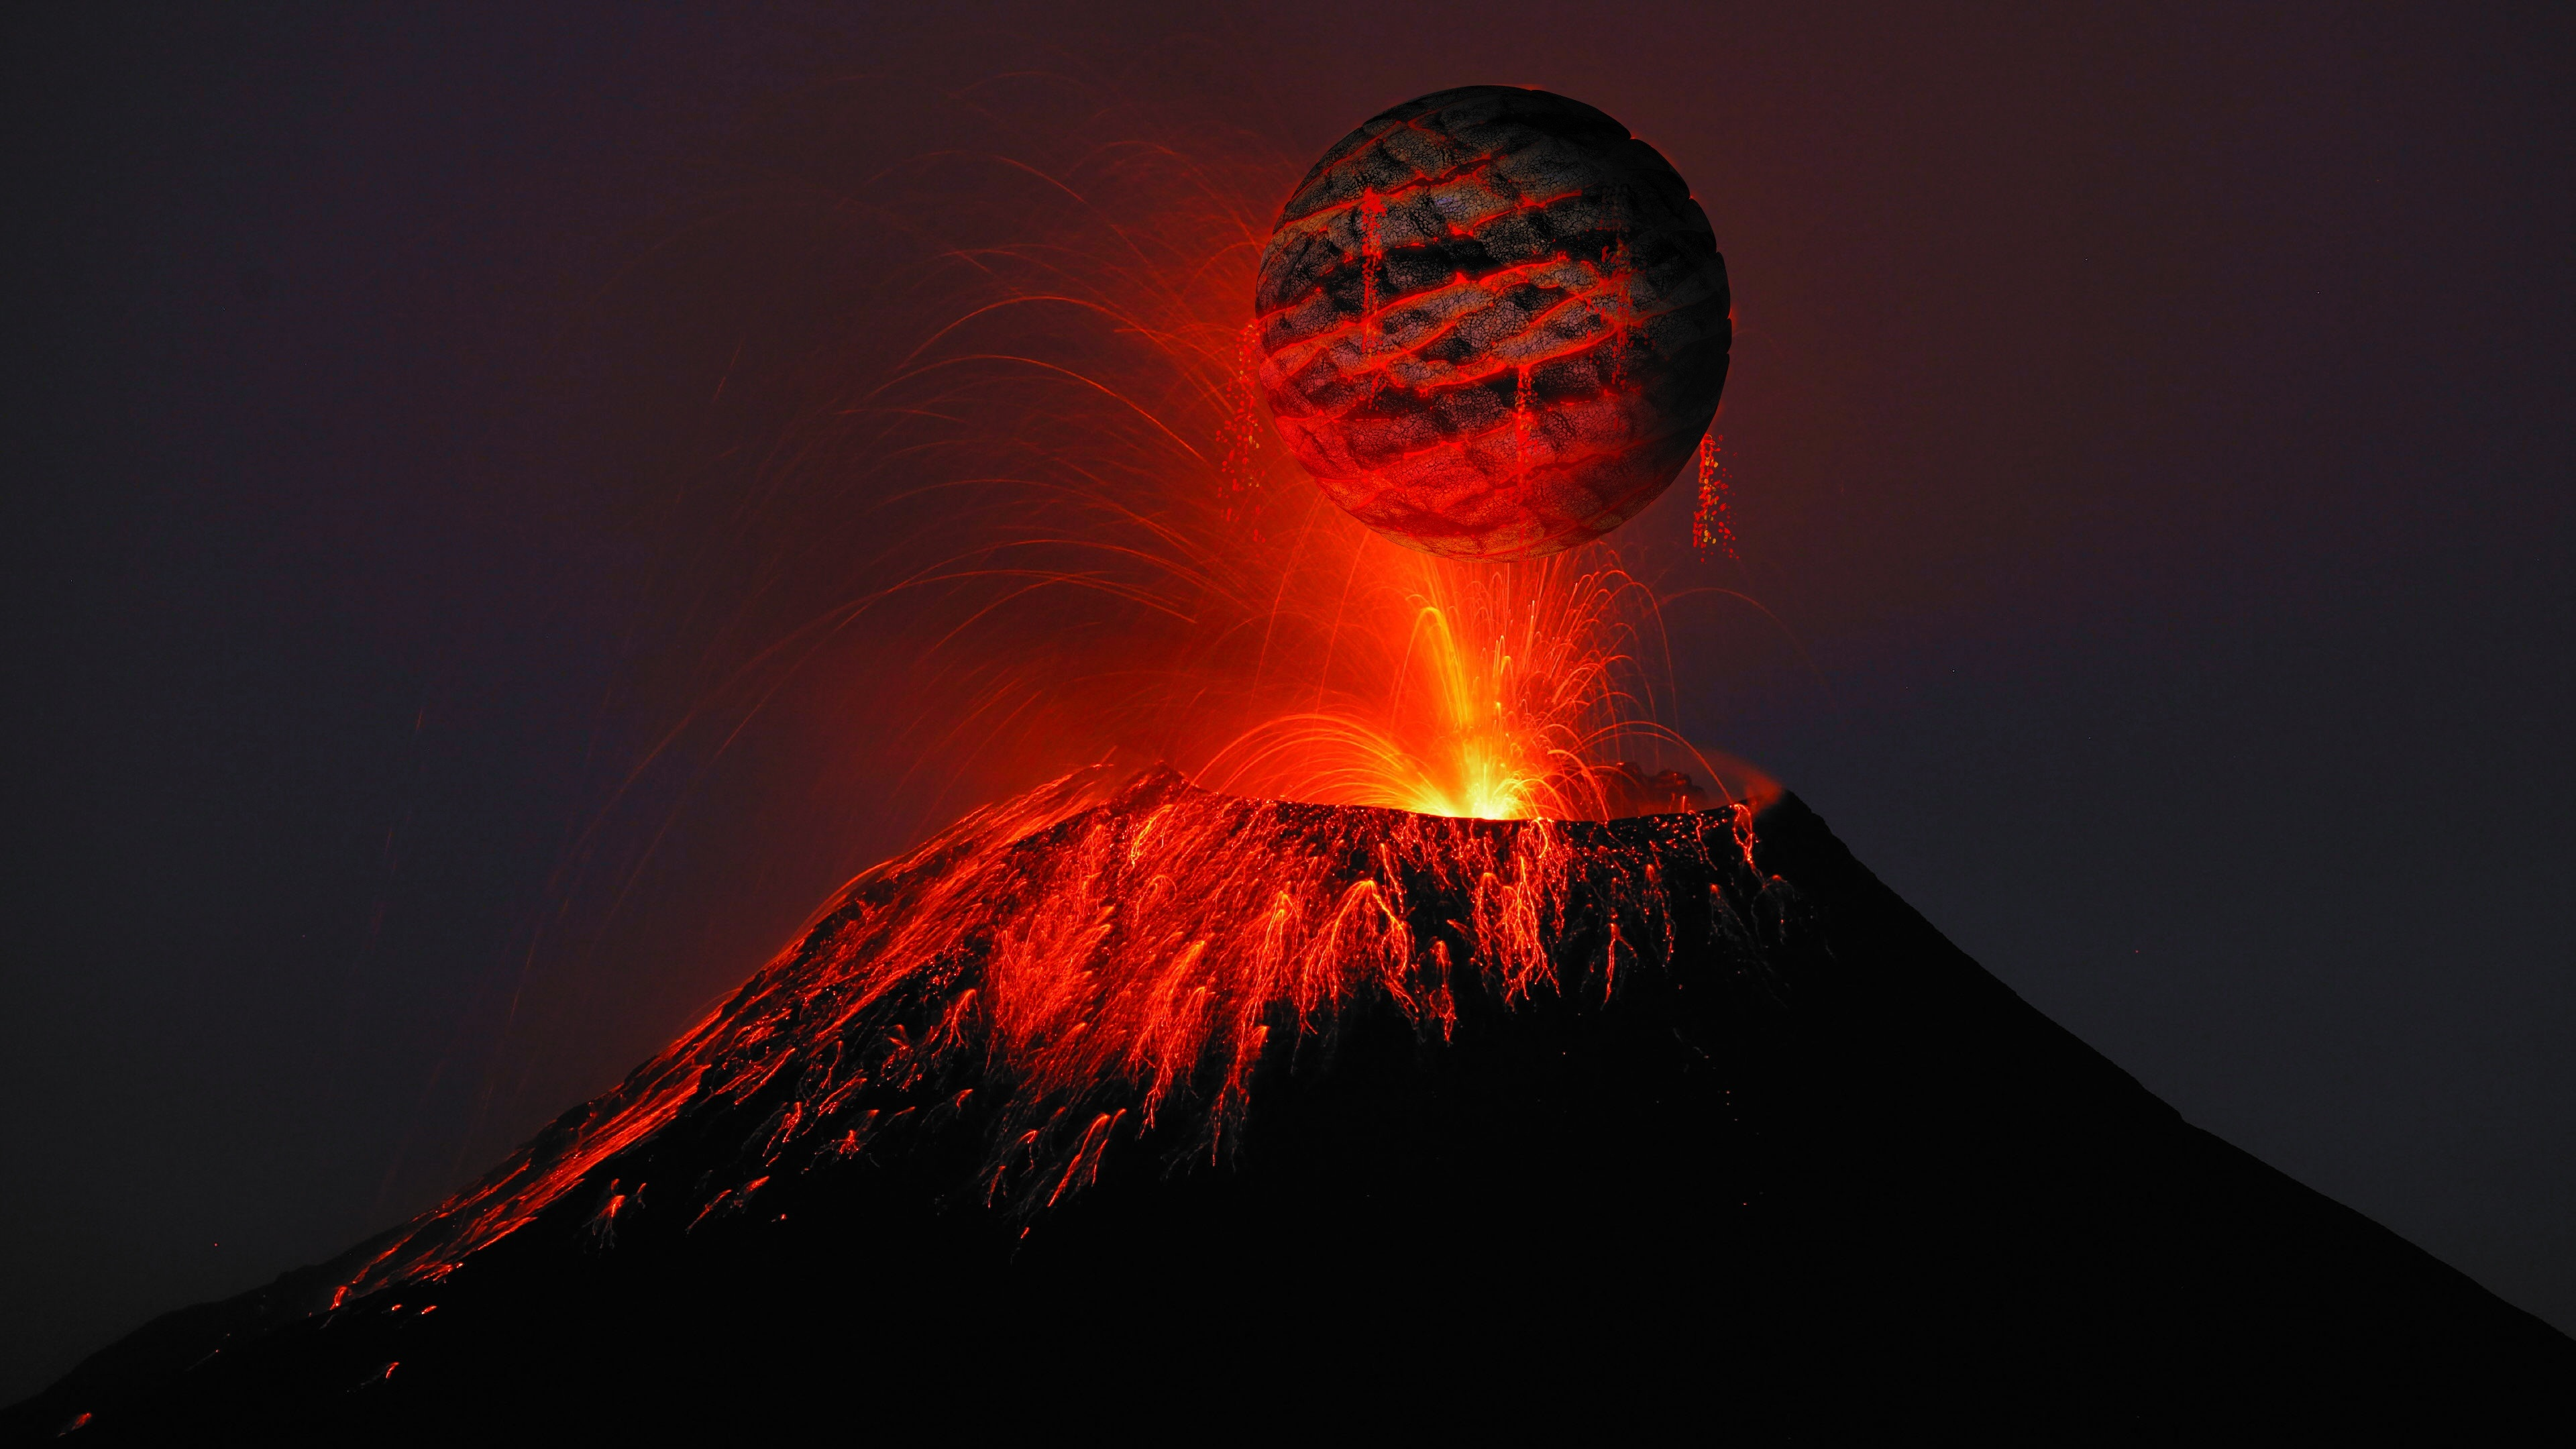 Volcano Lava 4k HD Nature Wallpapers Images Backgrounds